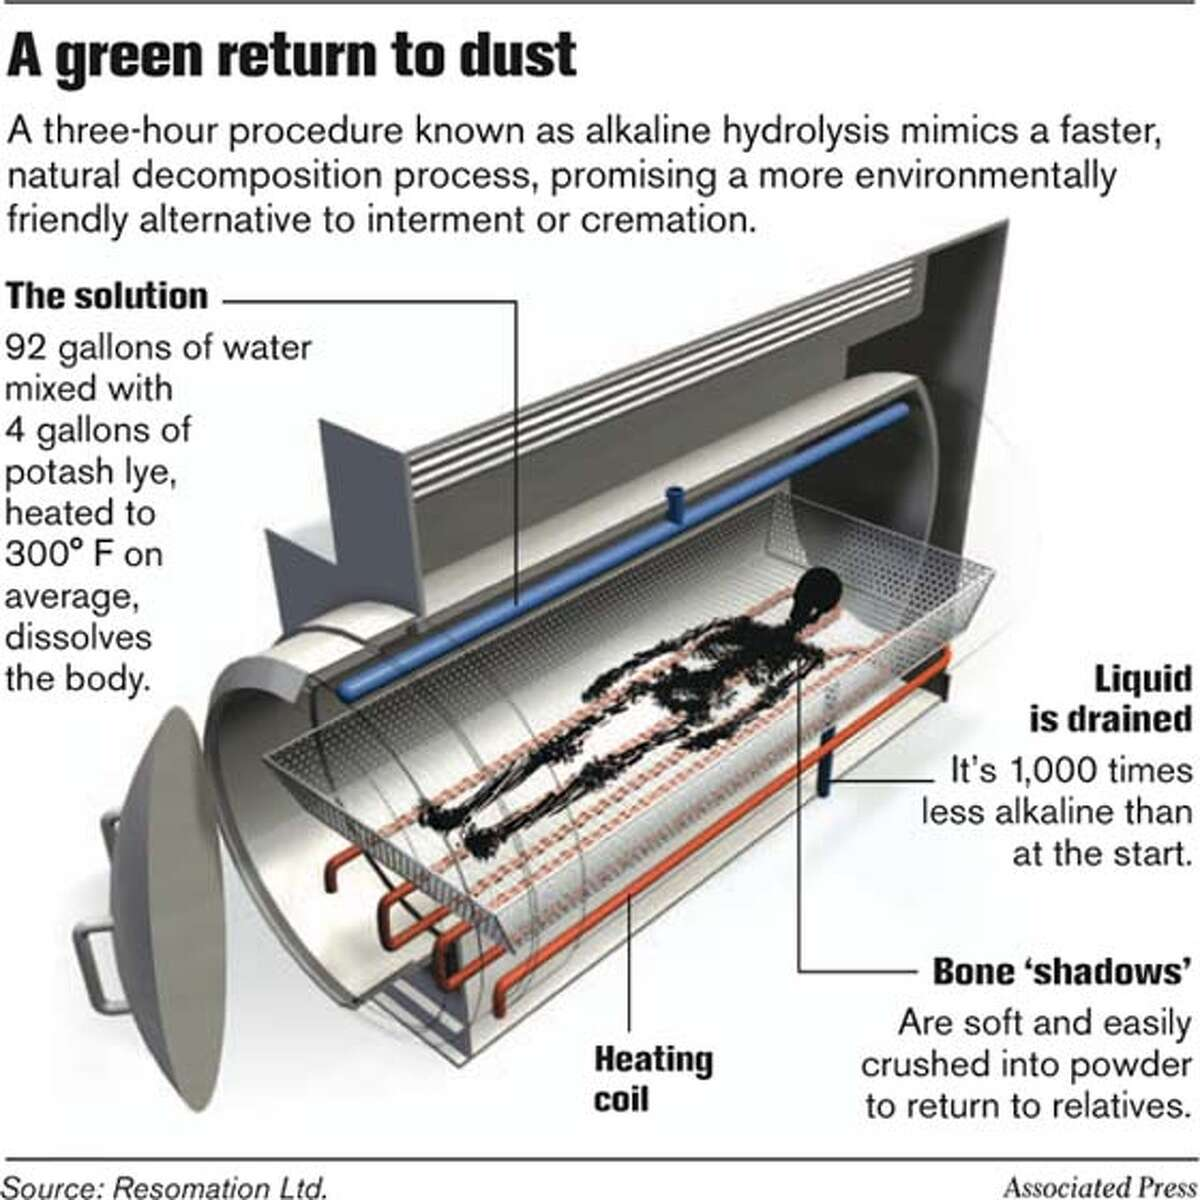 A green return to dust. Associated Press graphic